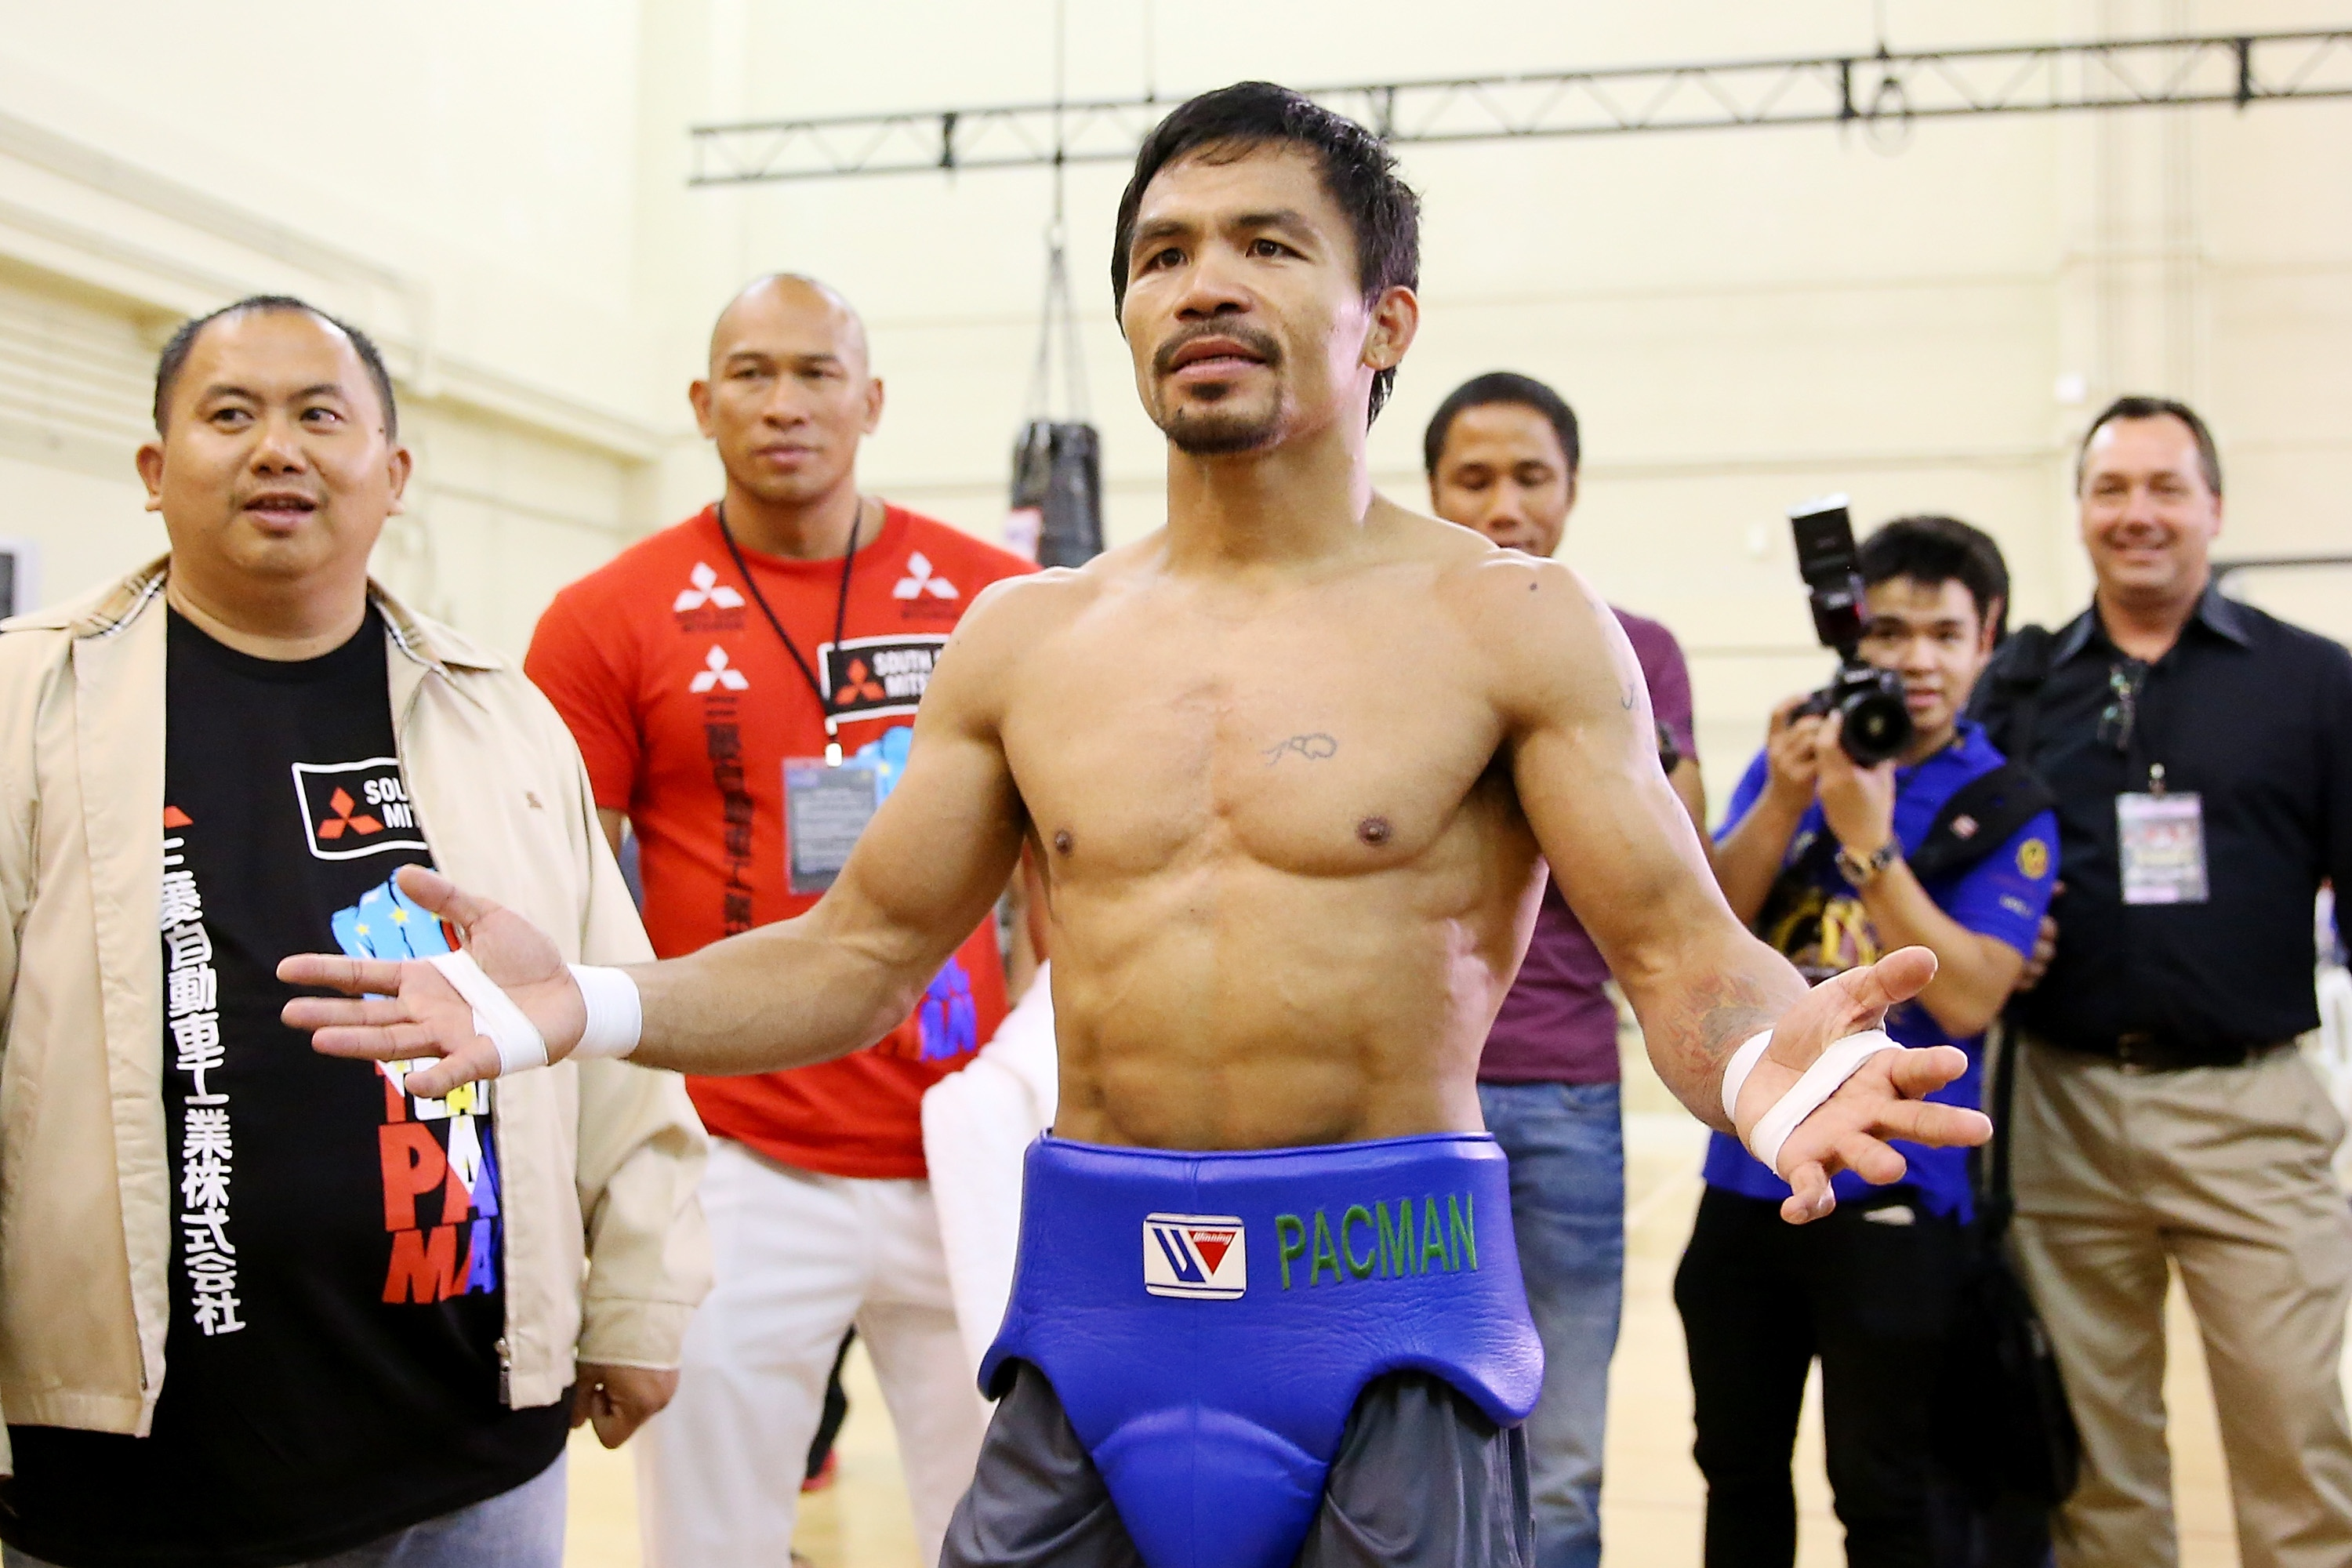 Manny Pacquiao trains during a workout session at The Venetian on Thursday. (Getty)